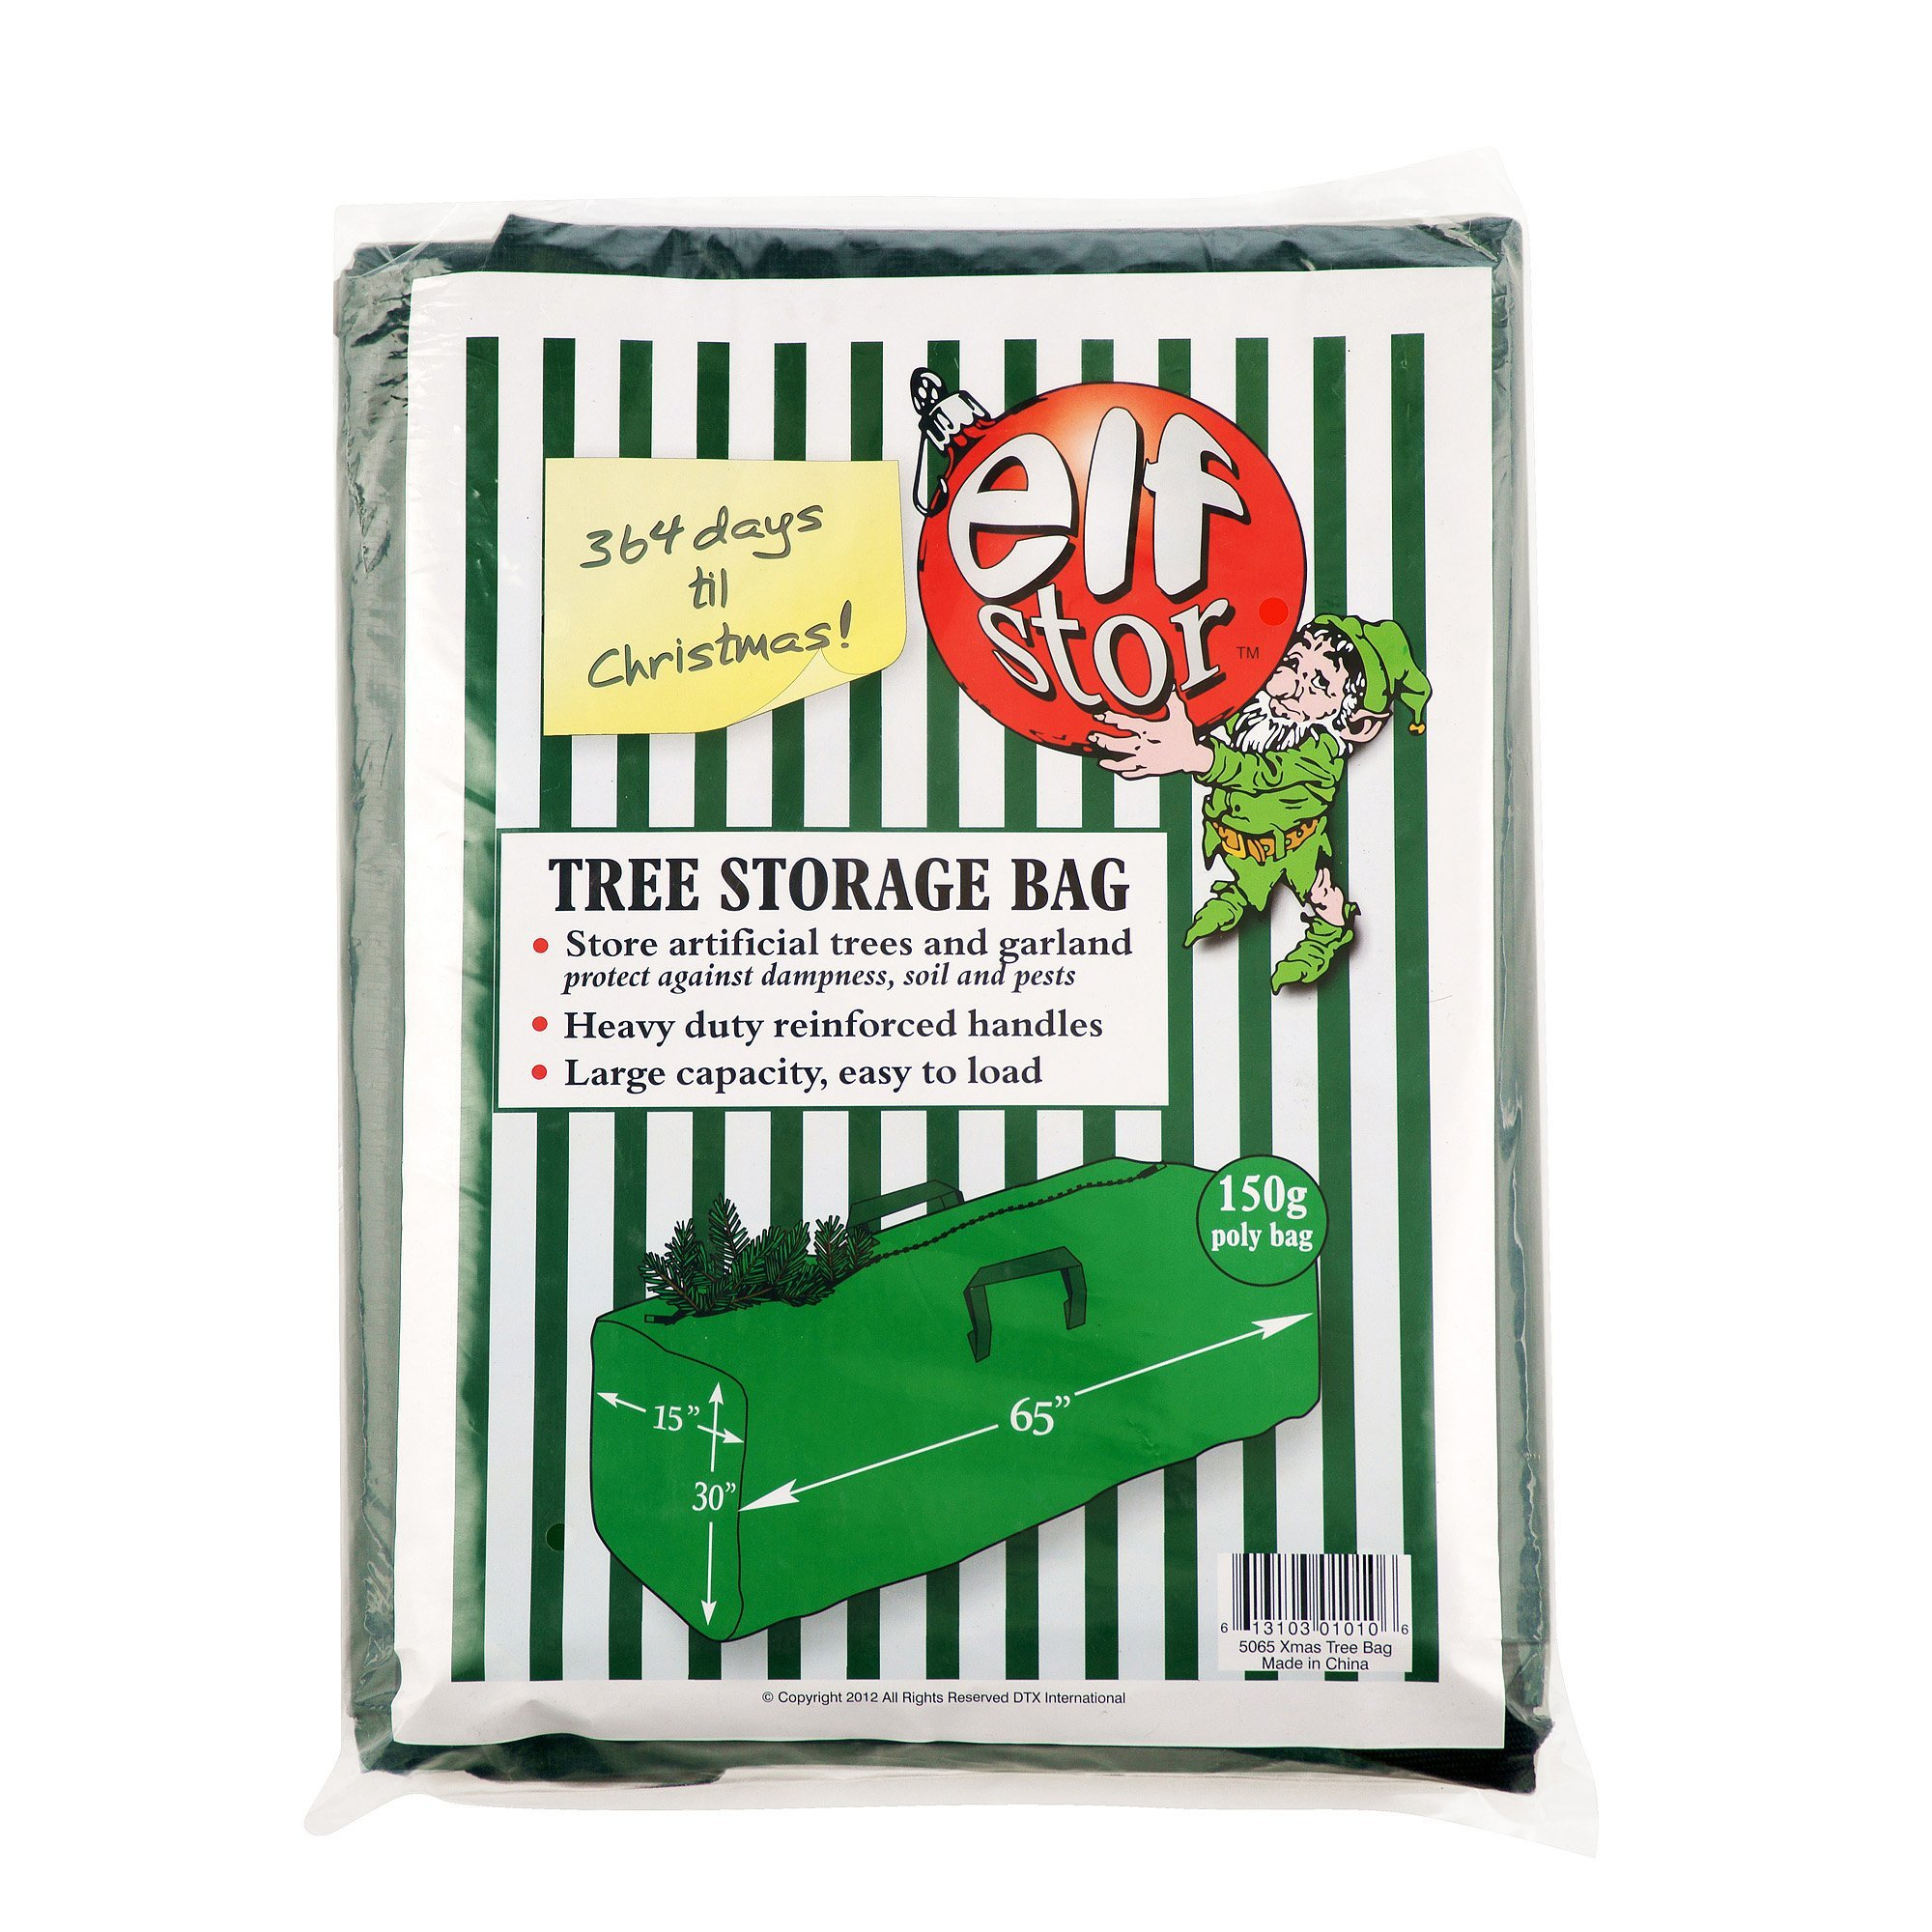 Elf Stor Premium Green Christmas Tree Bag Holiday Extra Large for up to 9' Tree Storage by Elf Stor (Image #6)